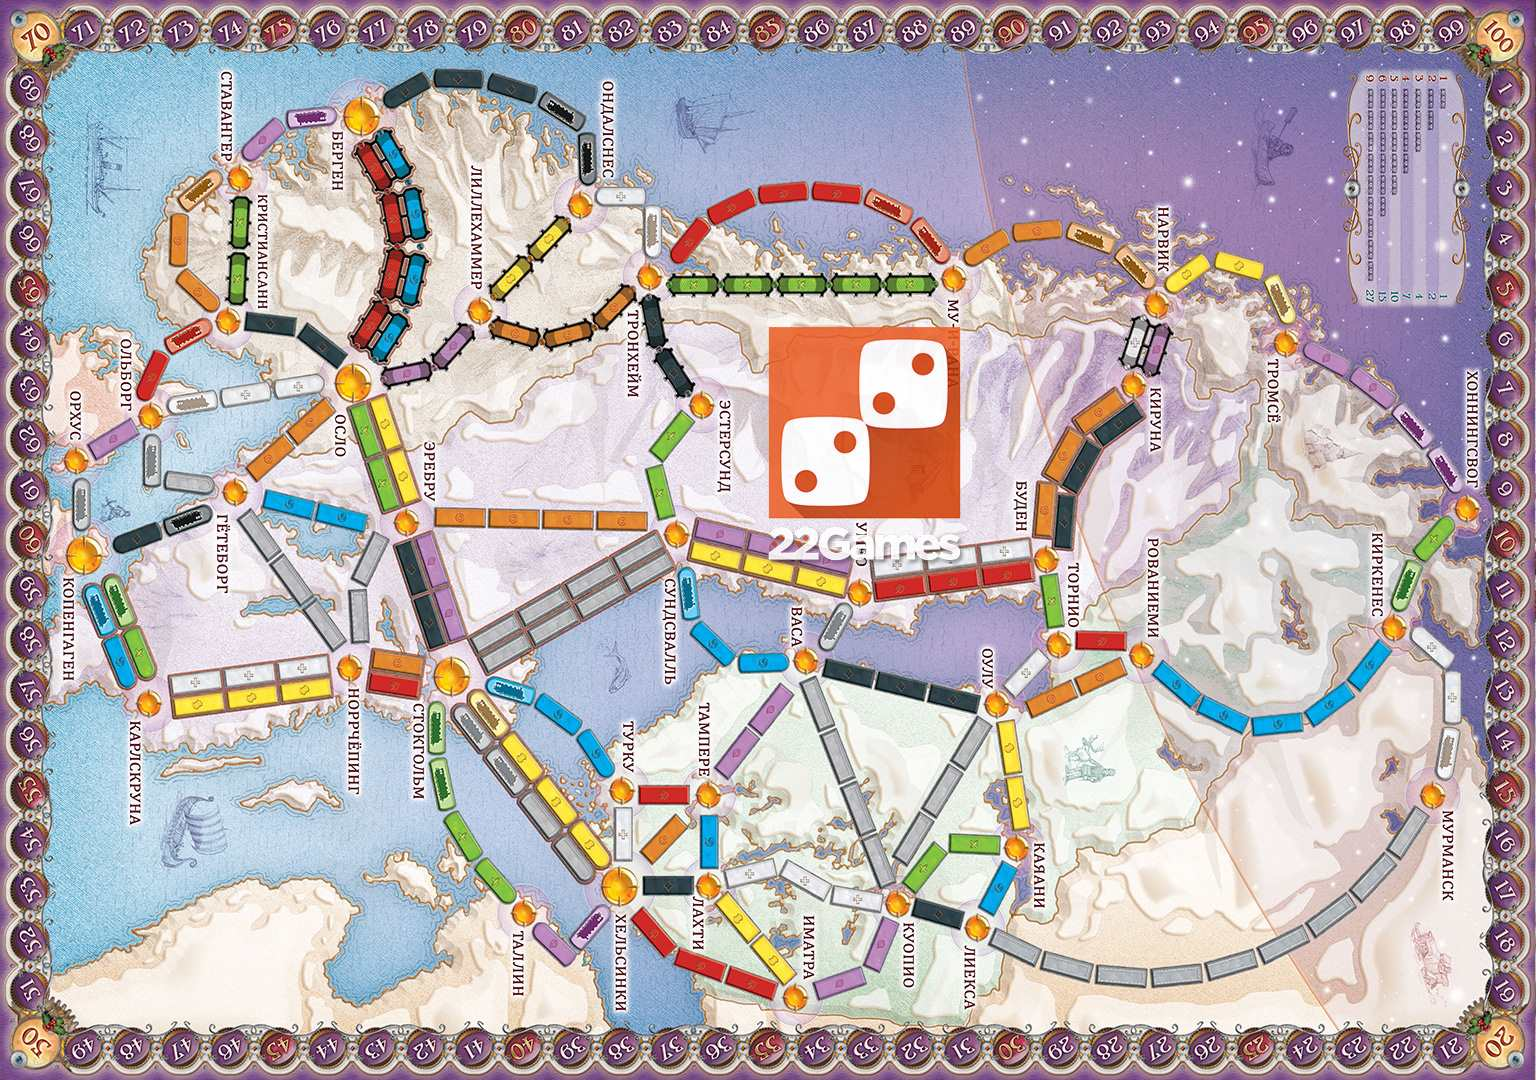 Ticket to Ride: Северные страны